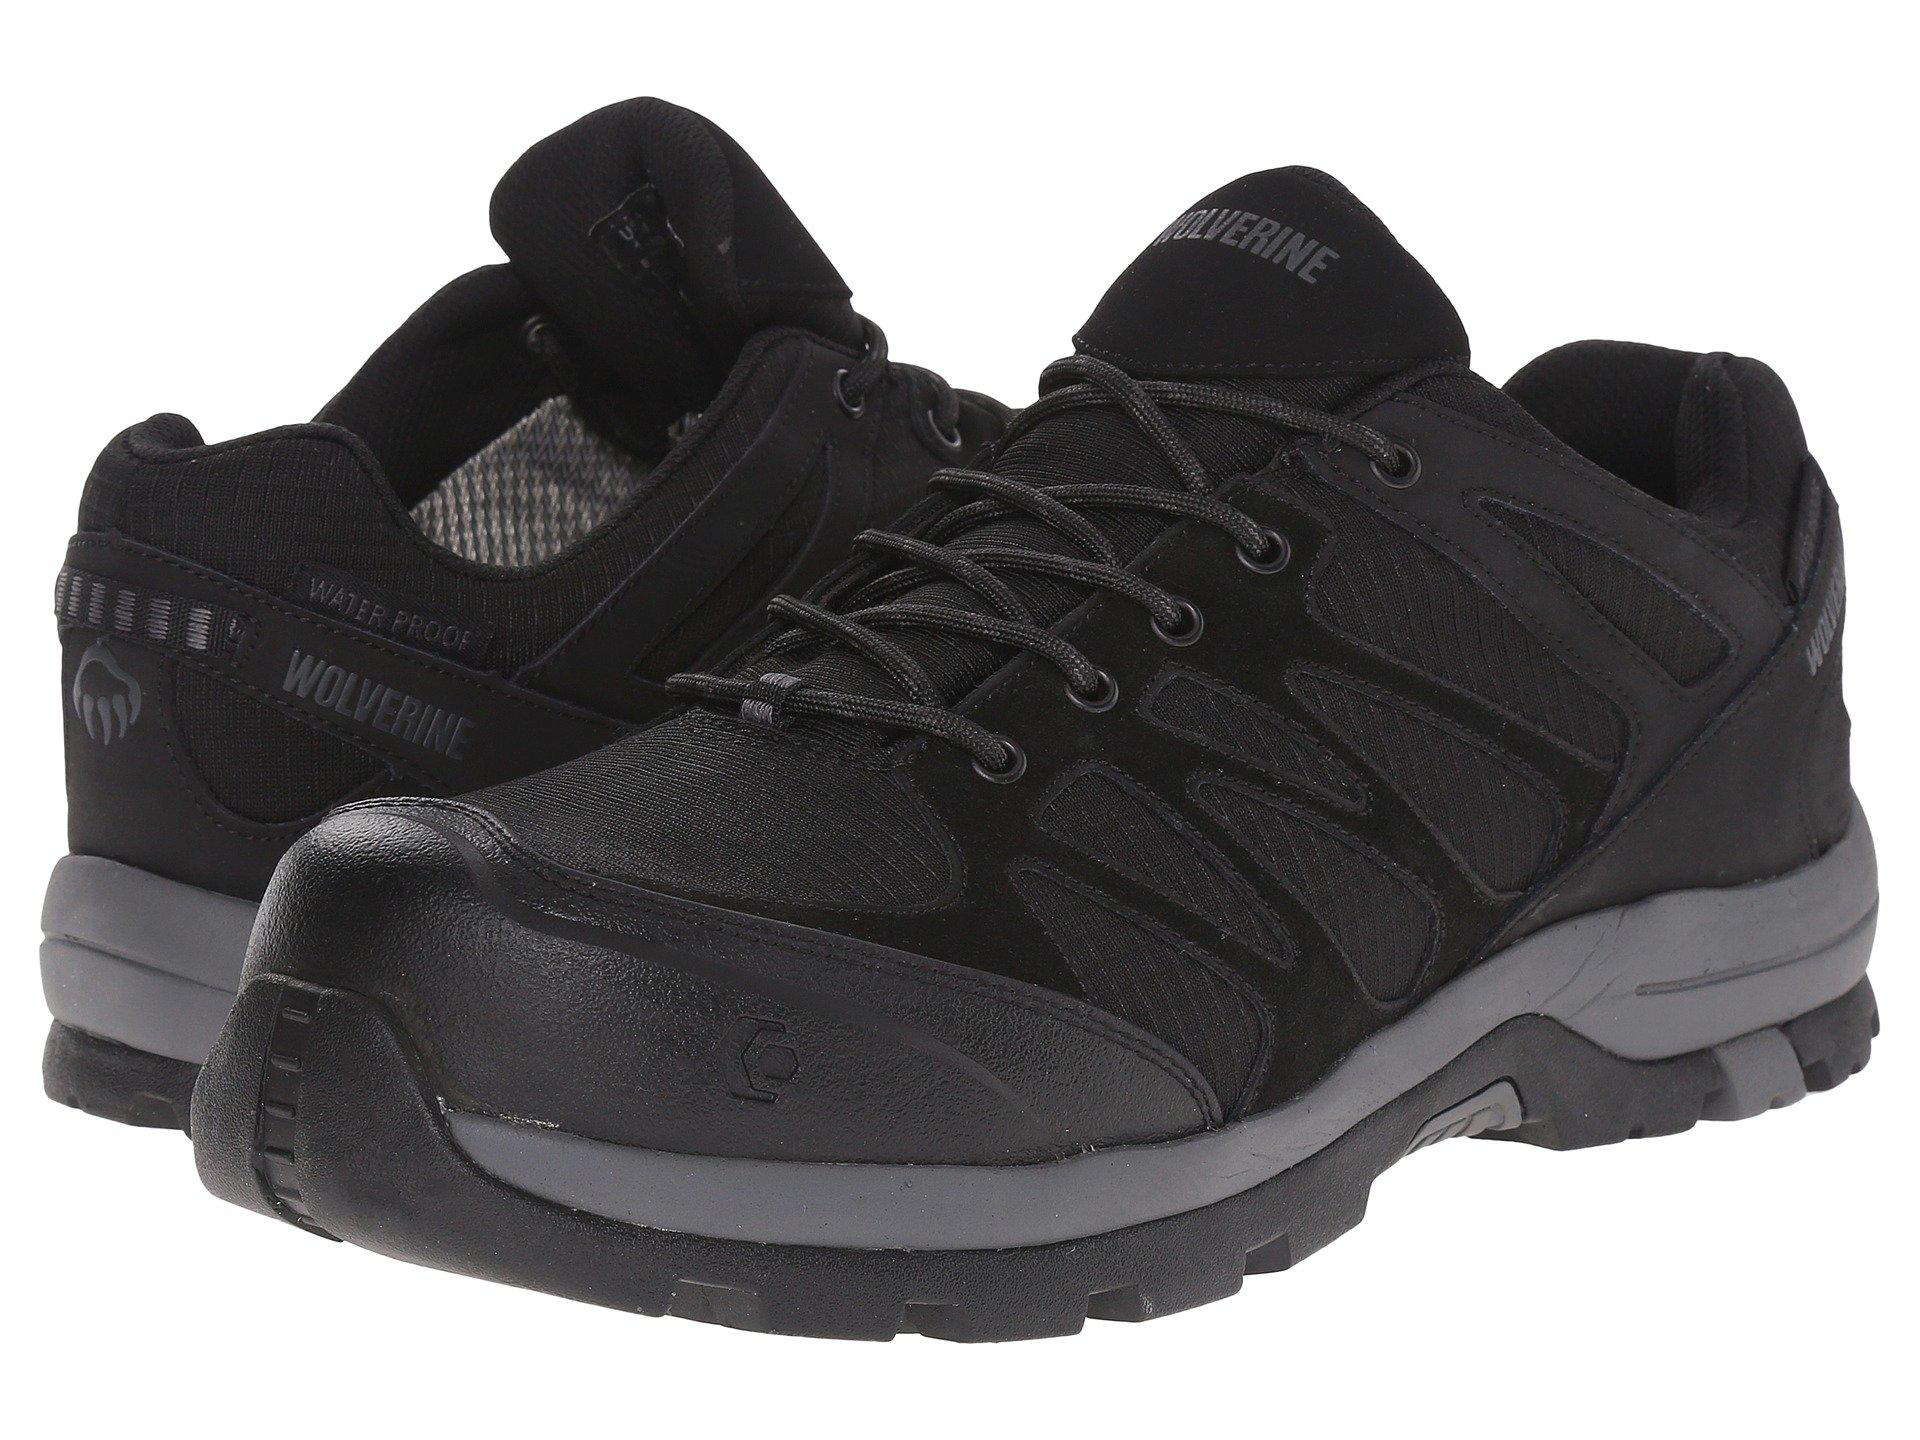 Fletcher NT Low WPF Work Hiker Wolverine oQpkna